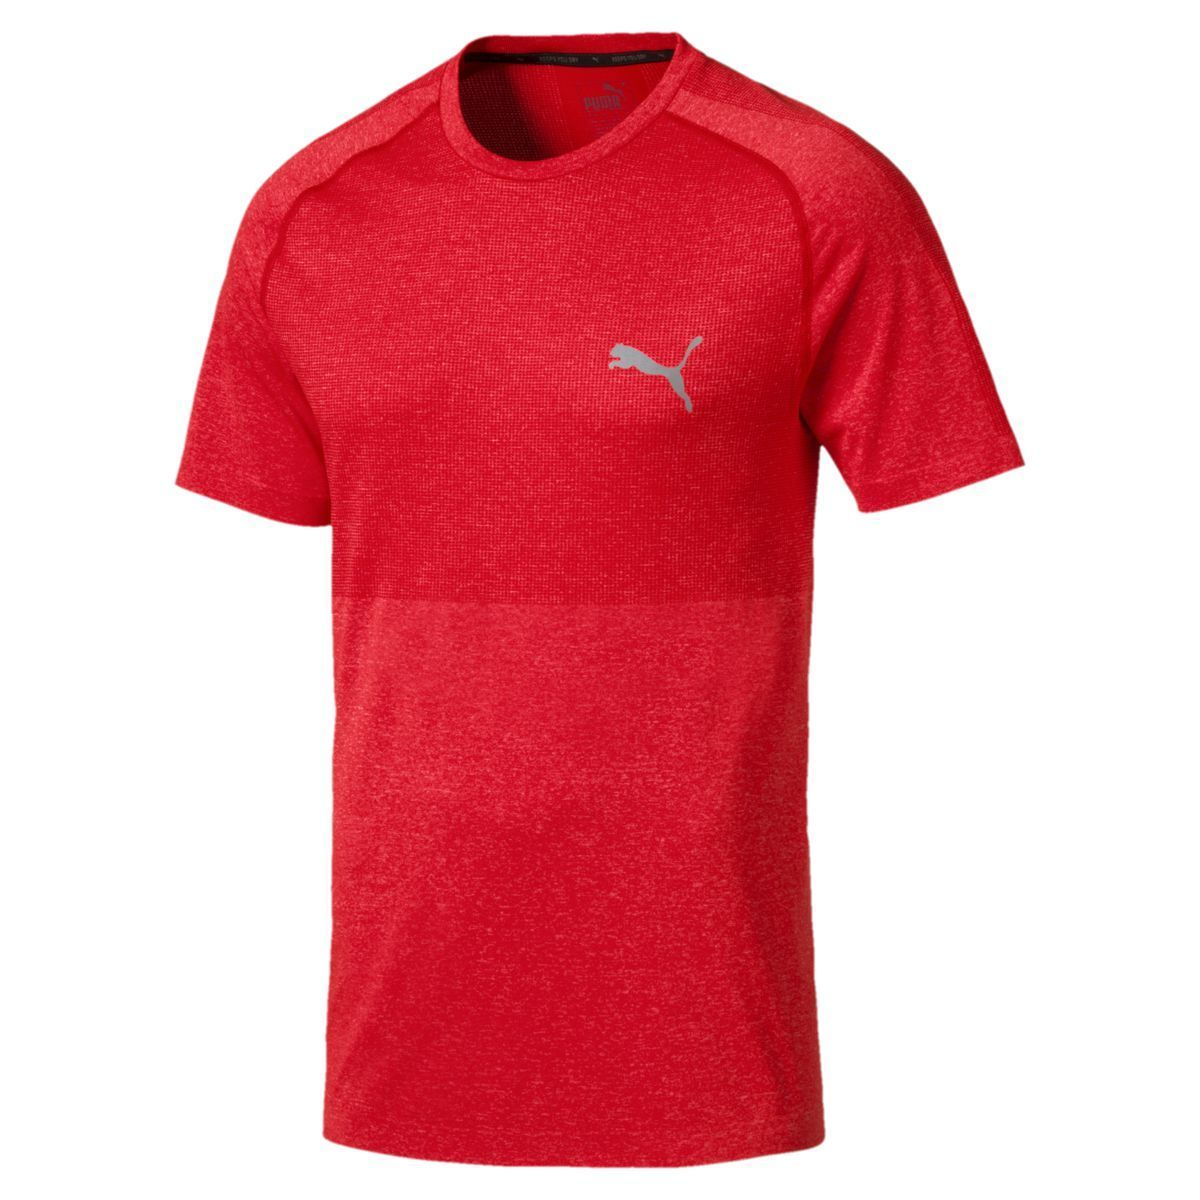 Puma Men's Evoknit Basic Tee - Red, S